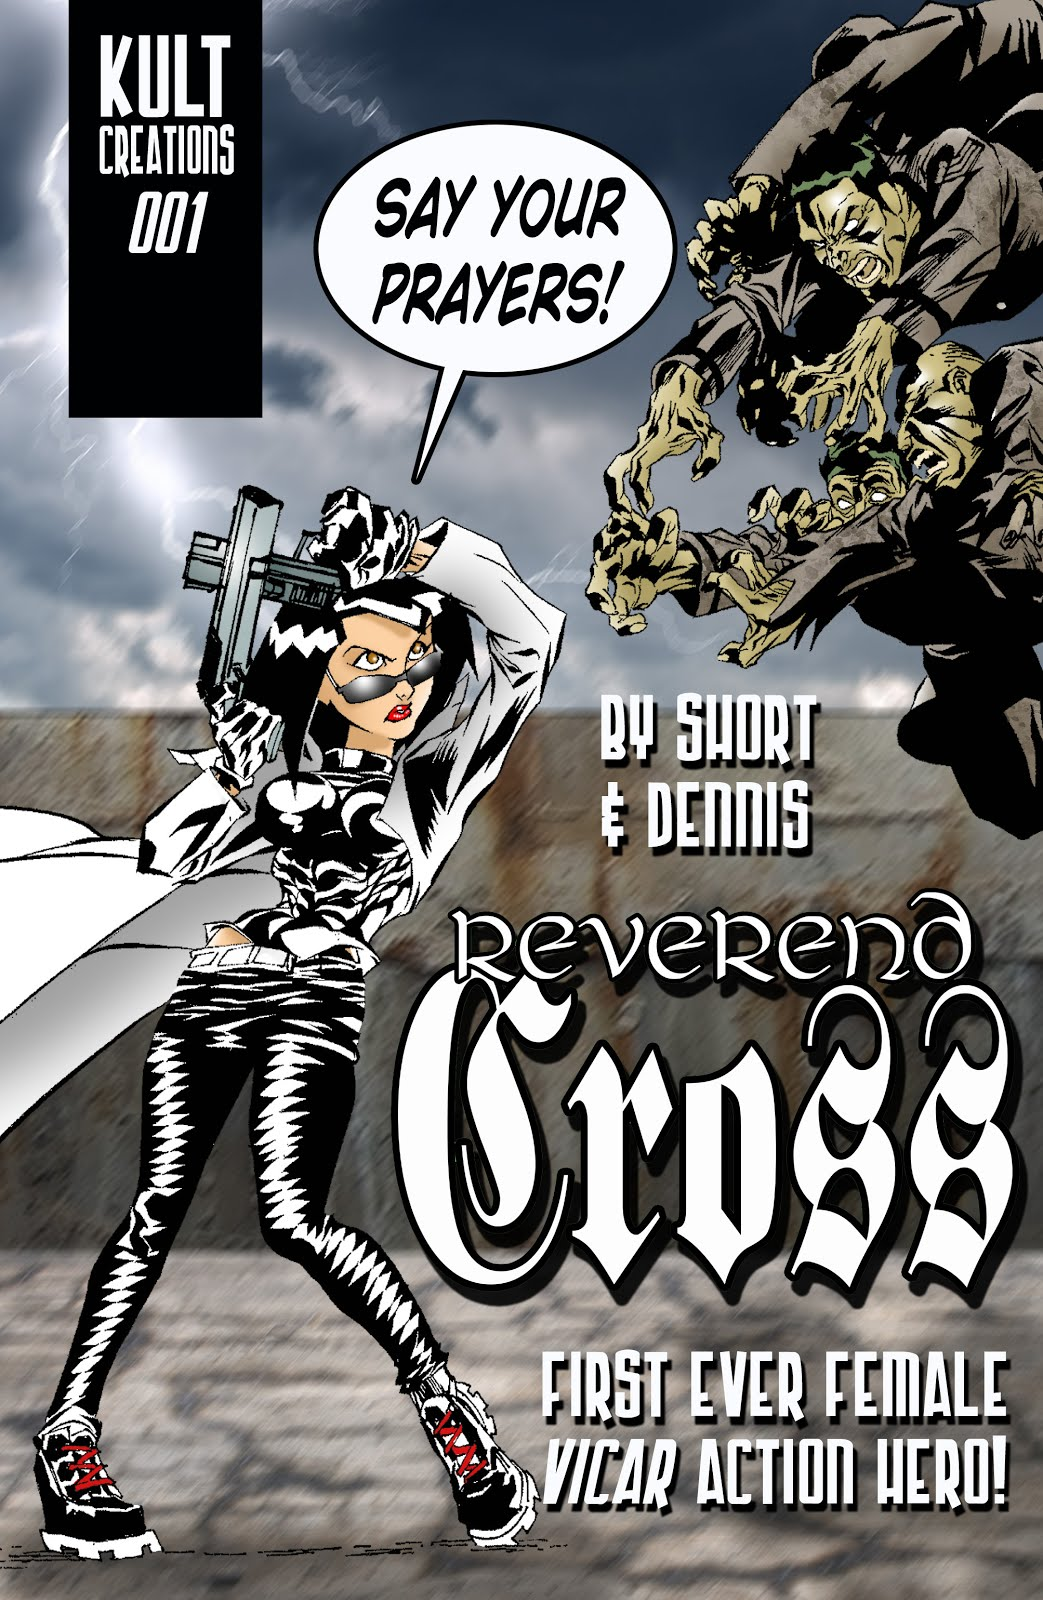 Buy Reverend Cross issue 001 BELOW!